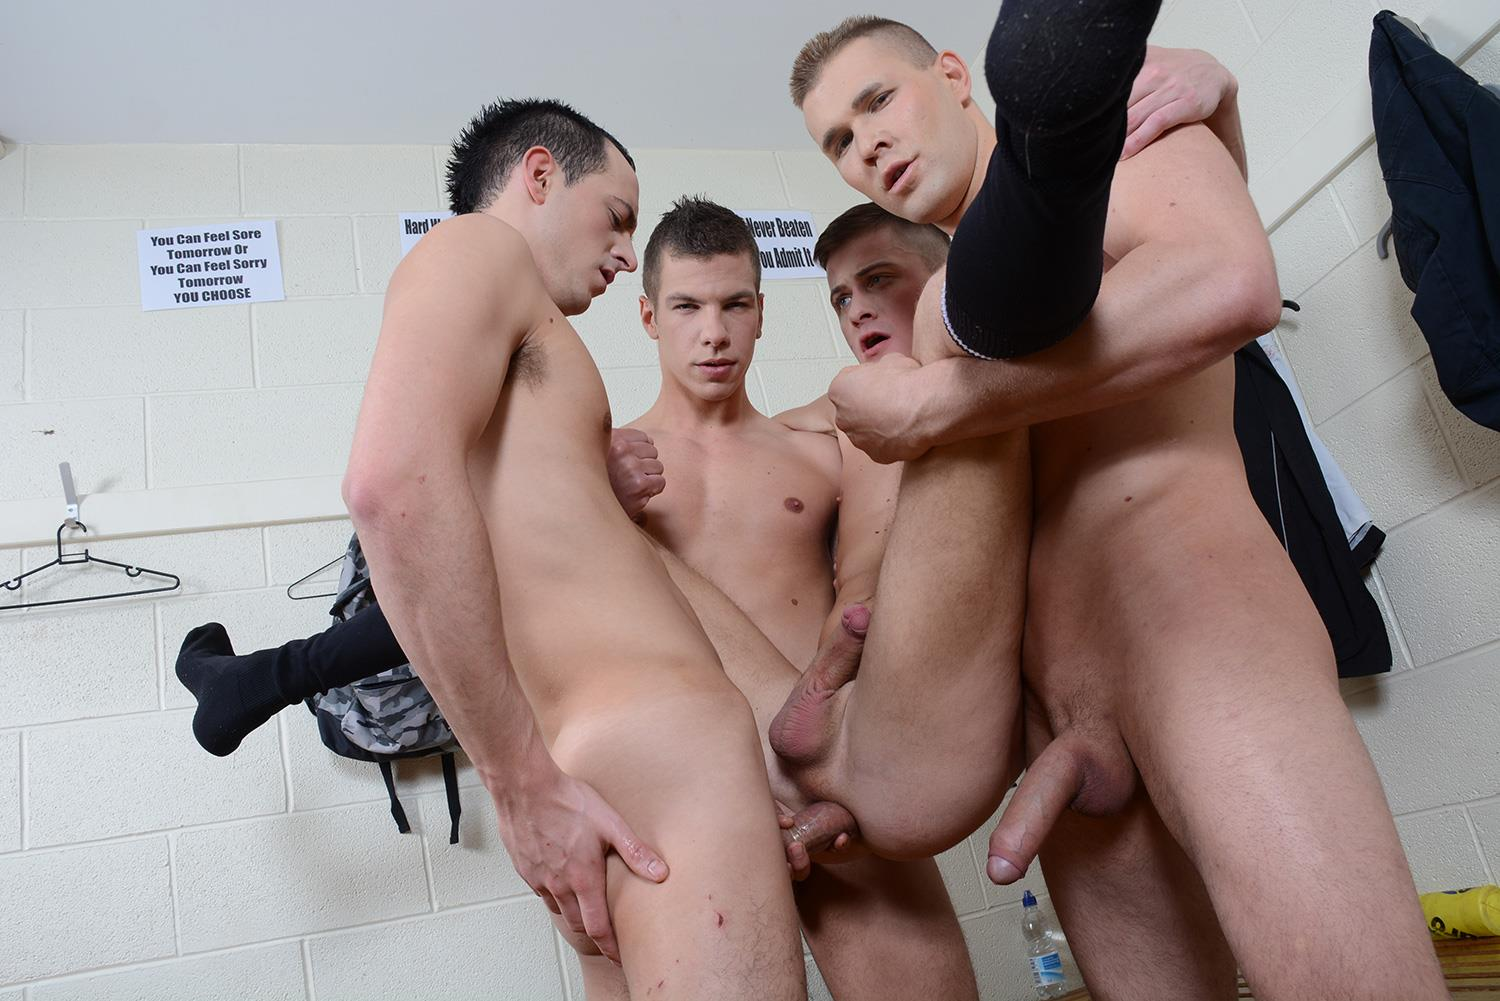 Staxus-Sportladz-Jordan-Fox-and-Luke-Desmond-and-Paul-Walker-and-Skylar-Blu-Amateur-Gay-Porn-11 World Cup Fever: Uncut Soccer Players Fucking In The Locker Room